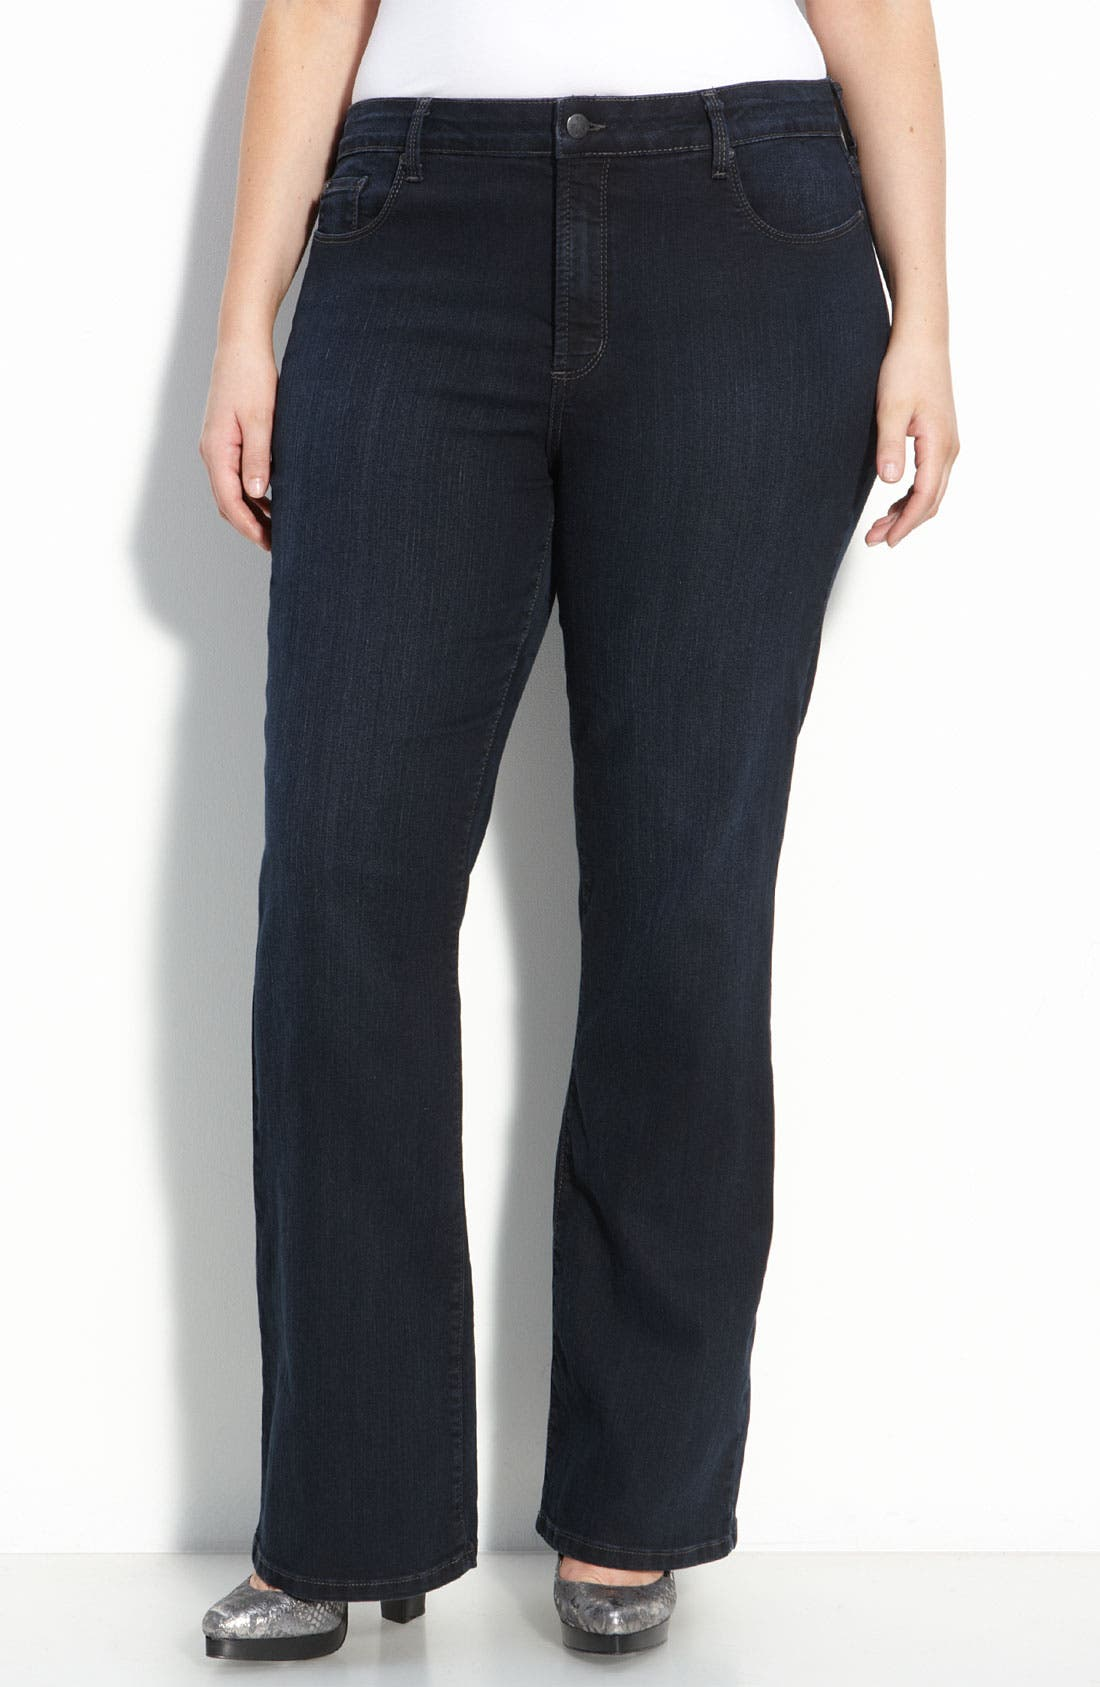 Main Image - Not Your Daughter's Jeans® Flare Leg Stretch Jeans (Storm Wash) (Plus)